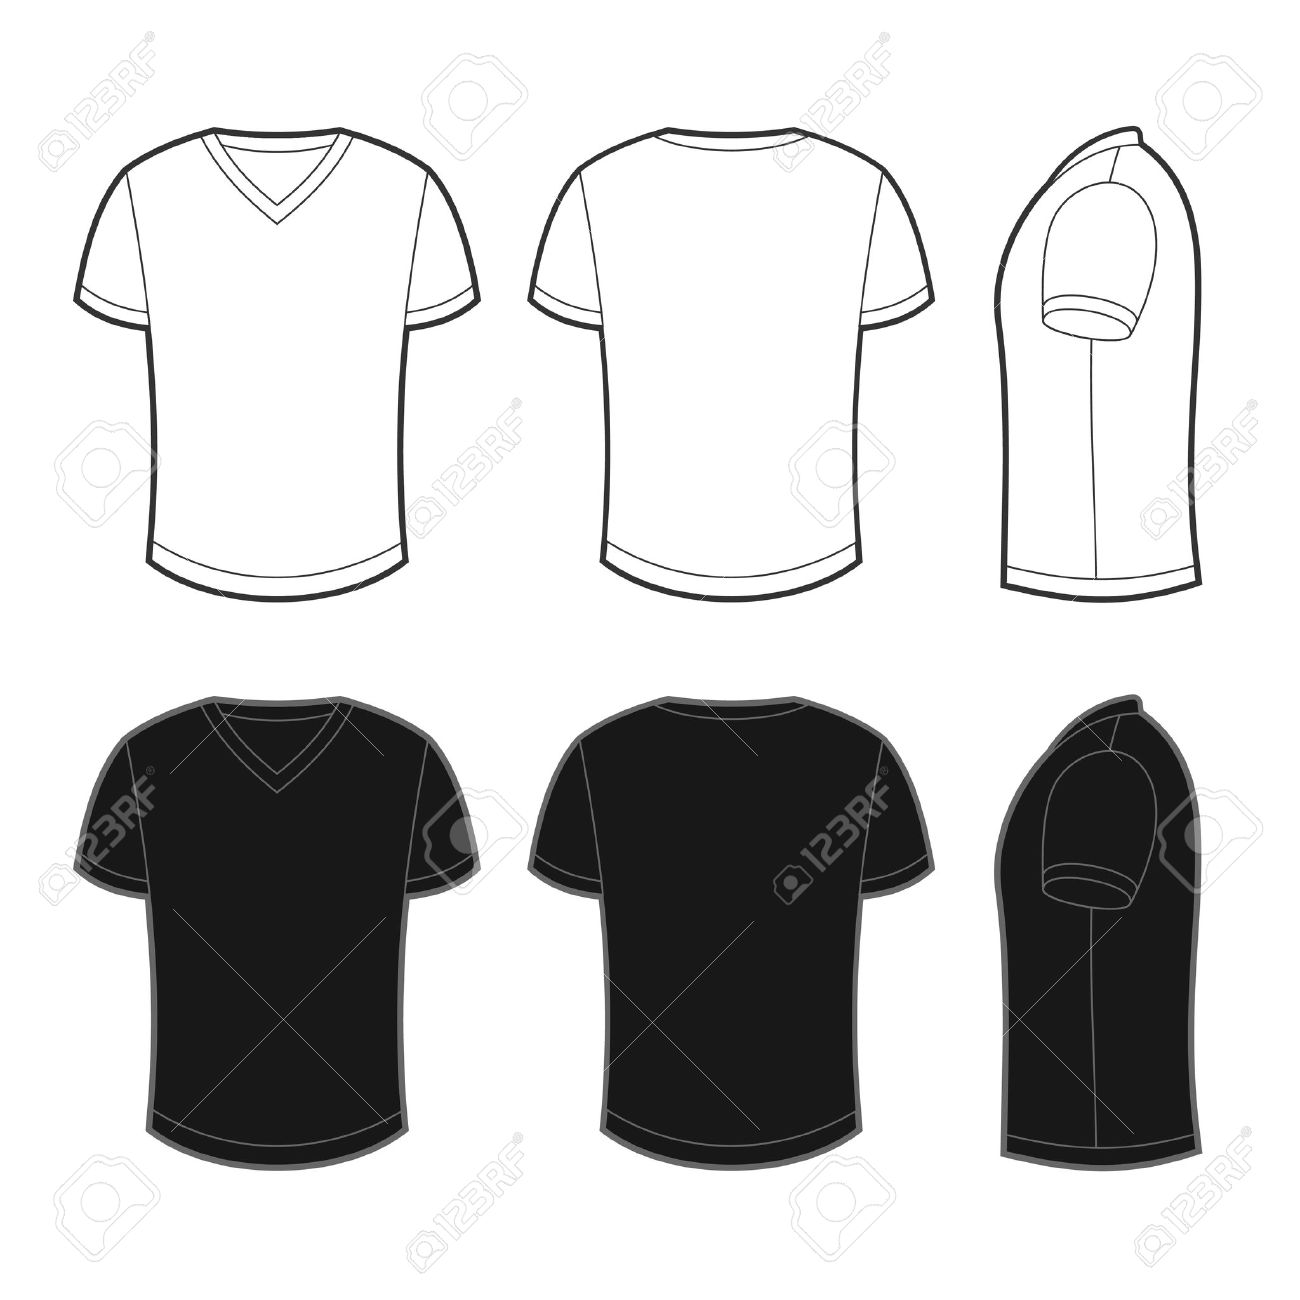 Blank black t shirt front and back - Front Back And Side Views Of White And Black Blank T Shirt Stock Photo